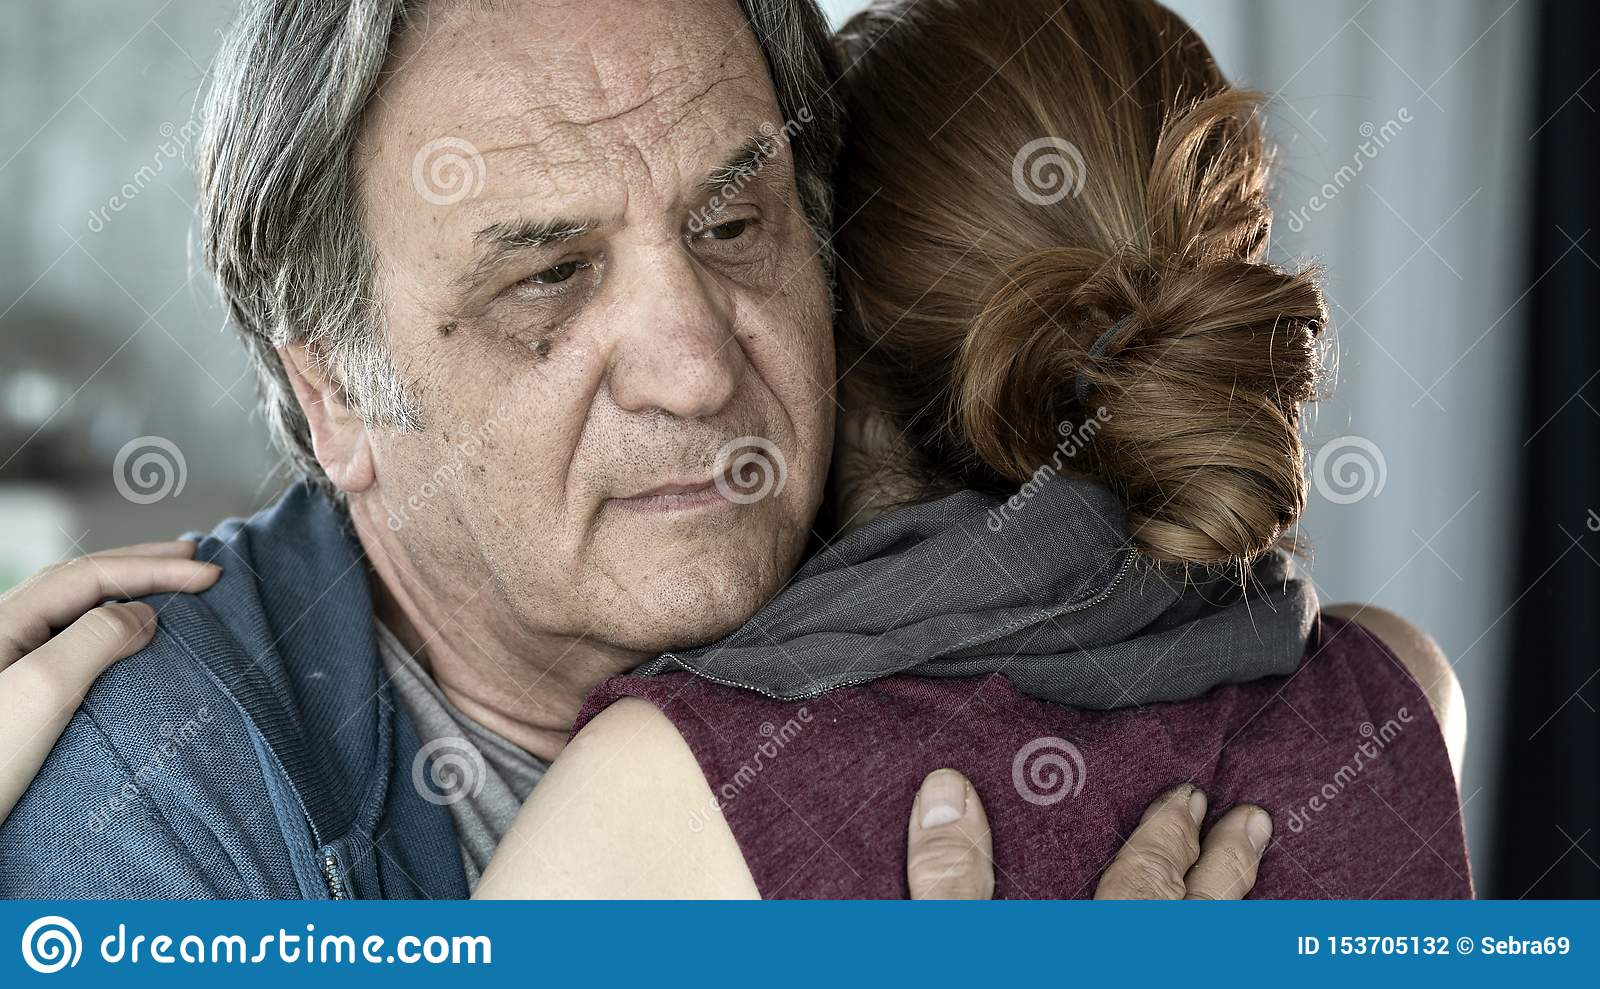 Father and daughter hugging close up view